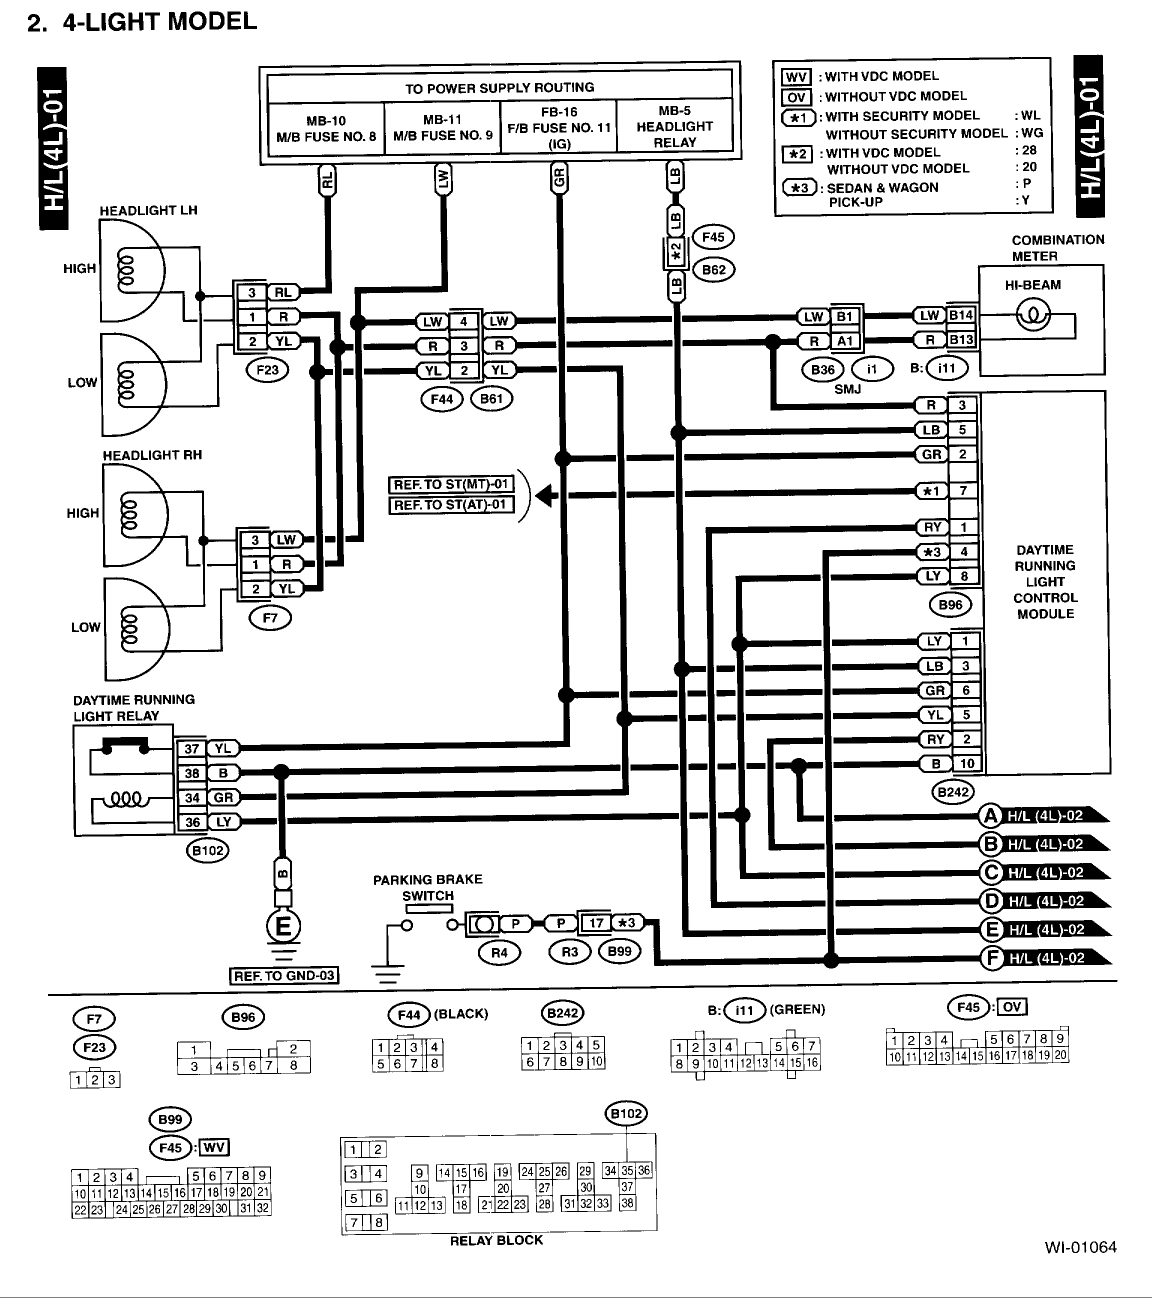 [DIAGRAM_38ZD]  2013 Forester Wiring Diagram - 2007 Infiniti G35 Sedan Engine Diagram for Wiring  Diagram Schematics | 2007 Forester Wiring Diagram |  | Wiring Diagram and Schematics